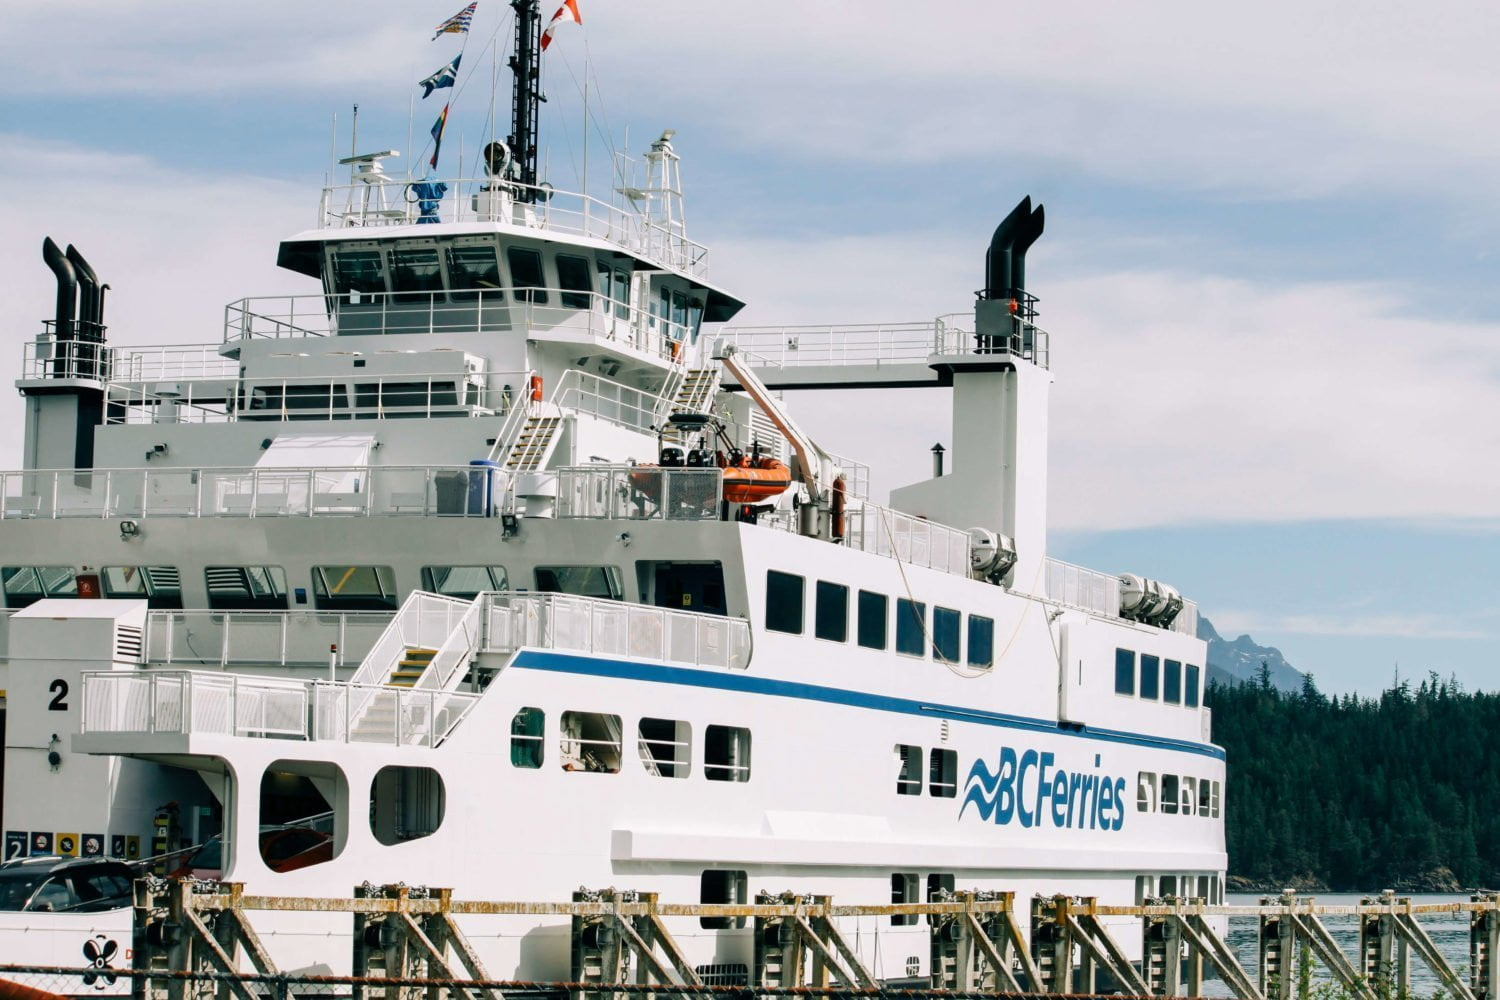 bc ferries exterior shot